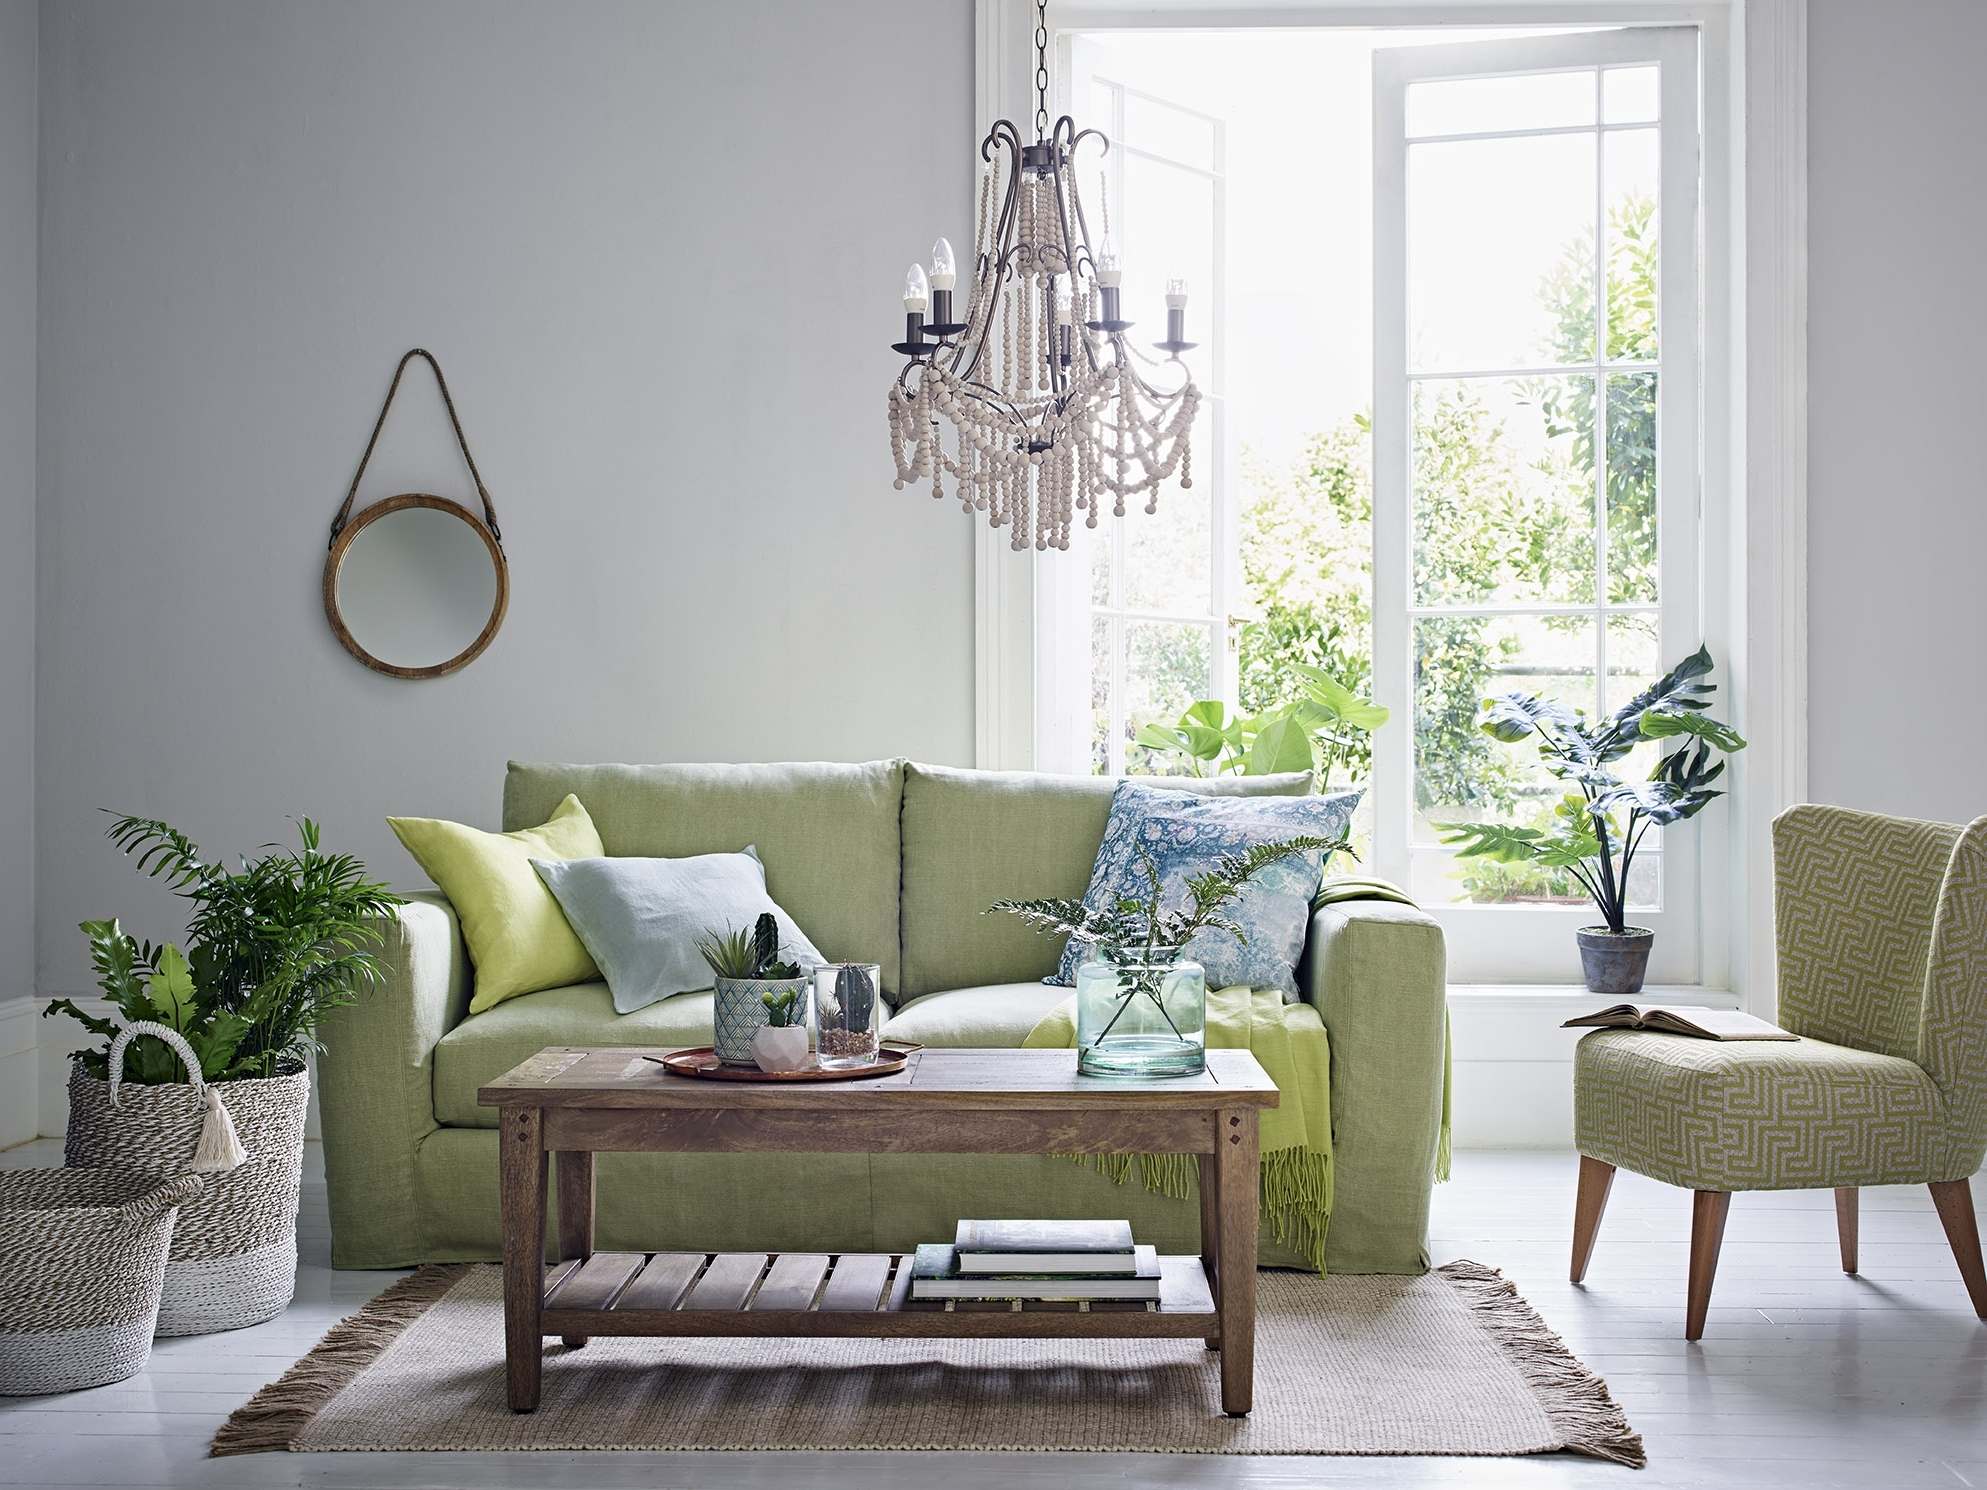 Green Sofas: 10 Of The Best | Real Homes 20+ Marks And Spencer Living Room Inspirations